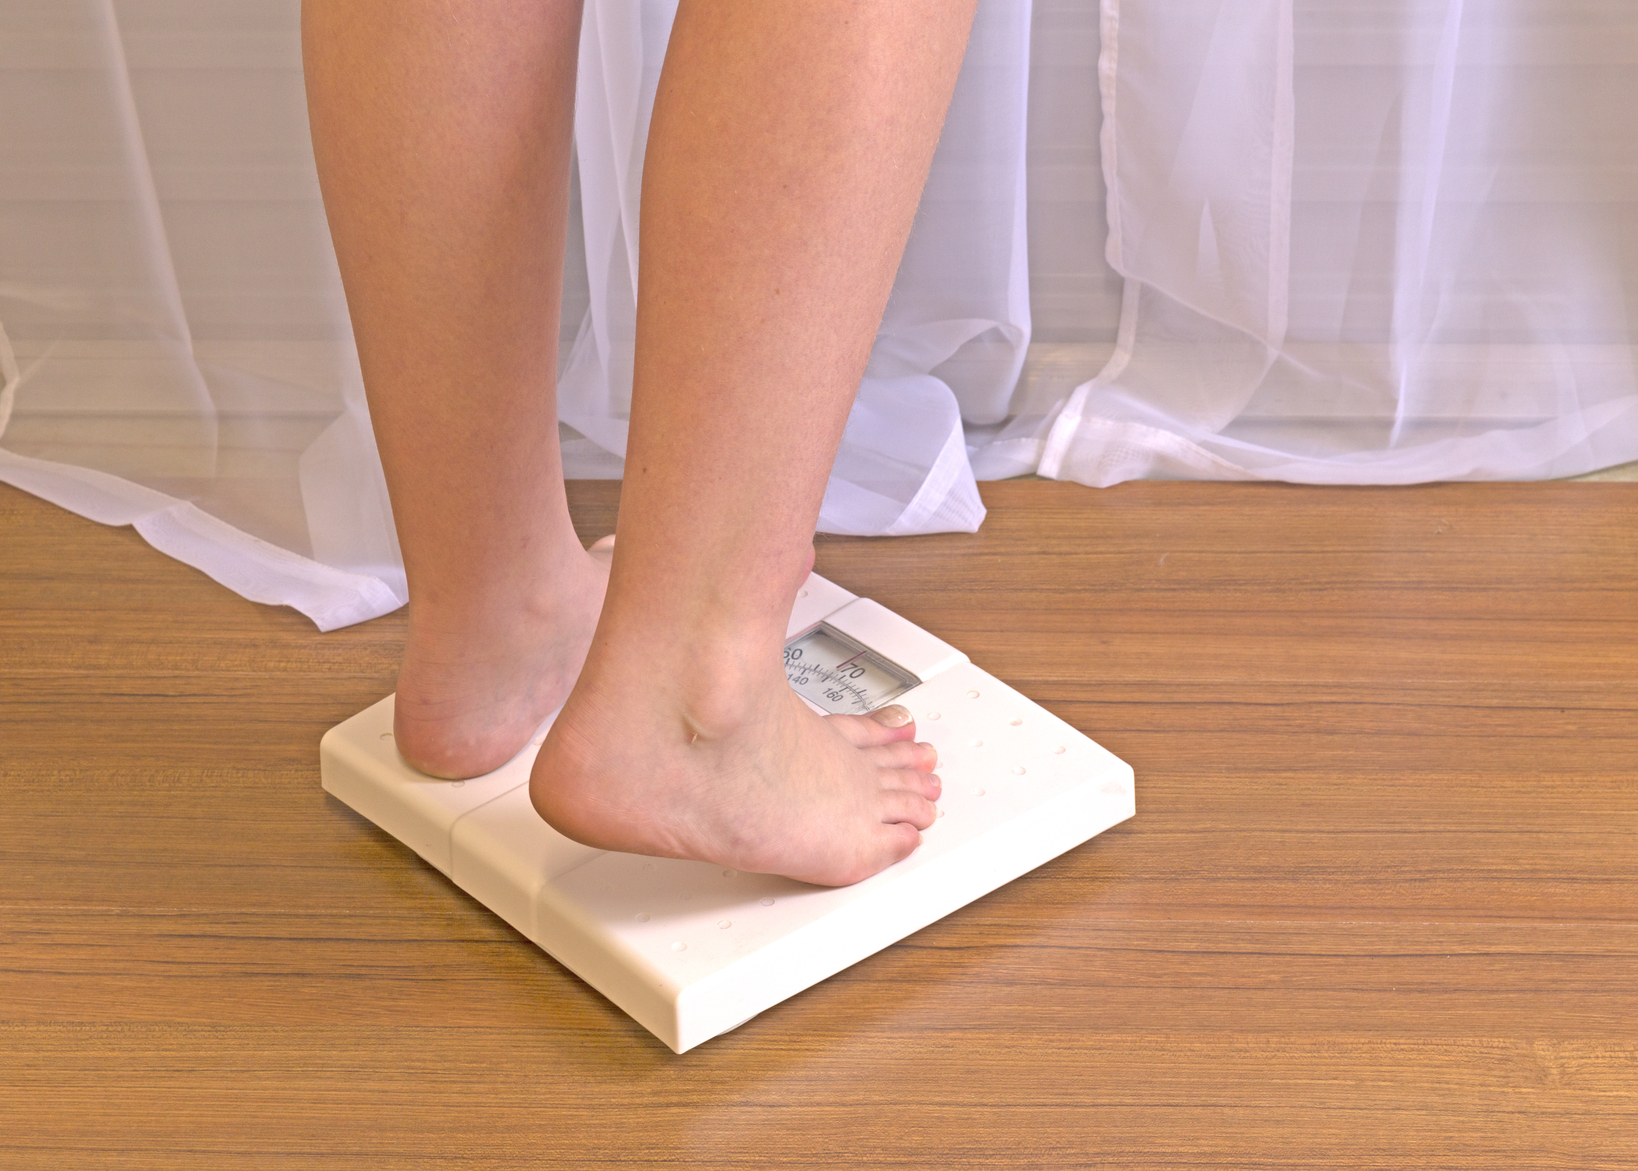 Young Energetic Girl Stepping on Bathroom Scale